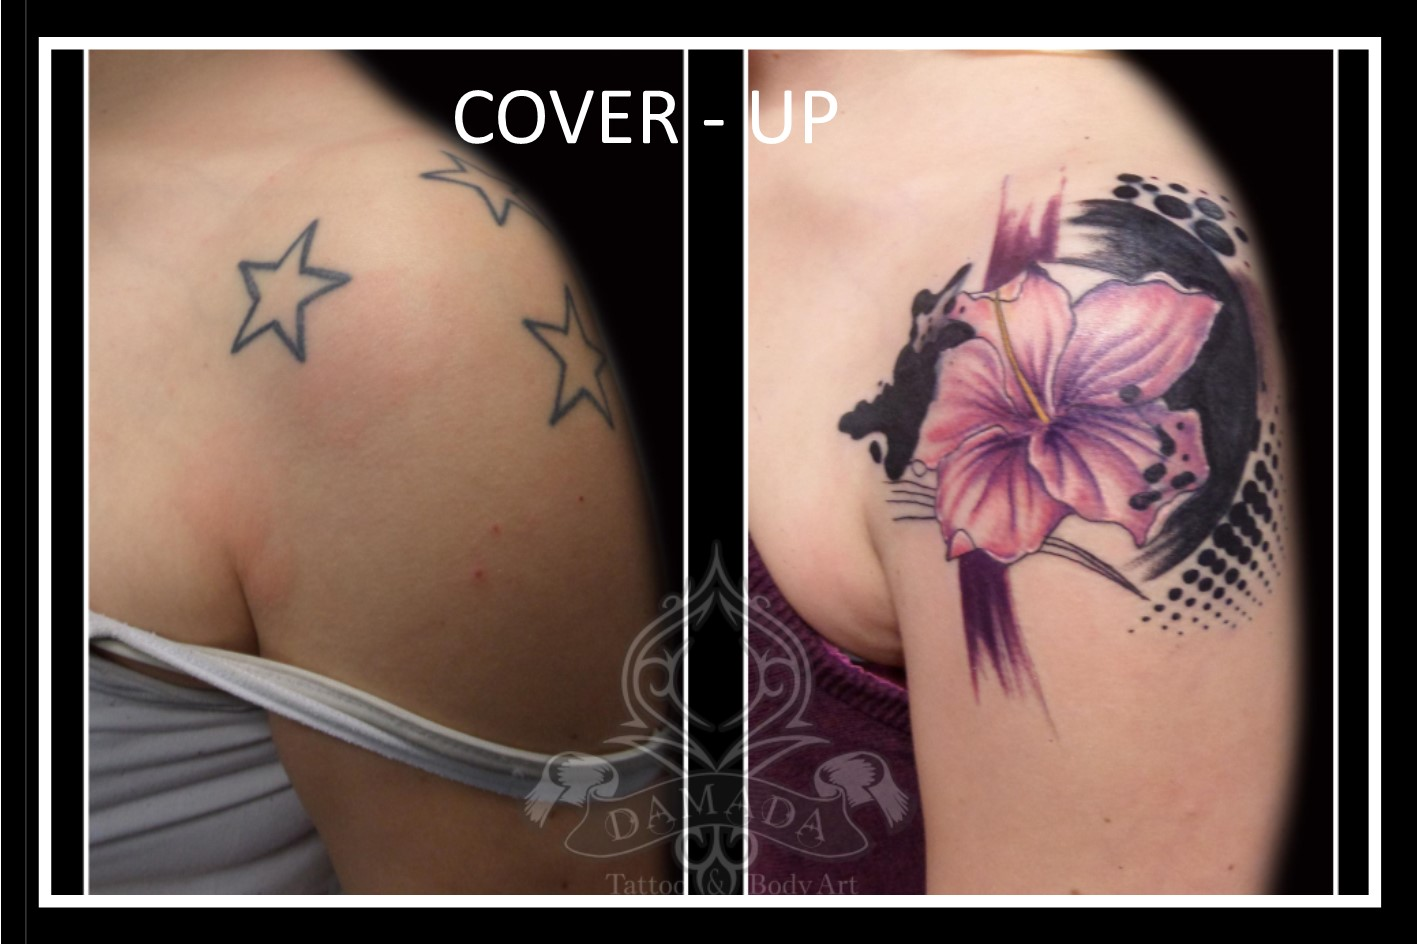 Cover Up trash